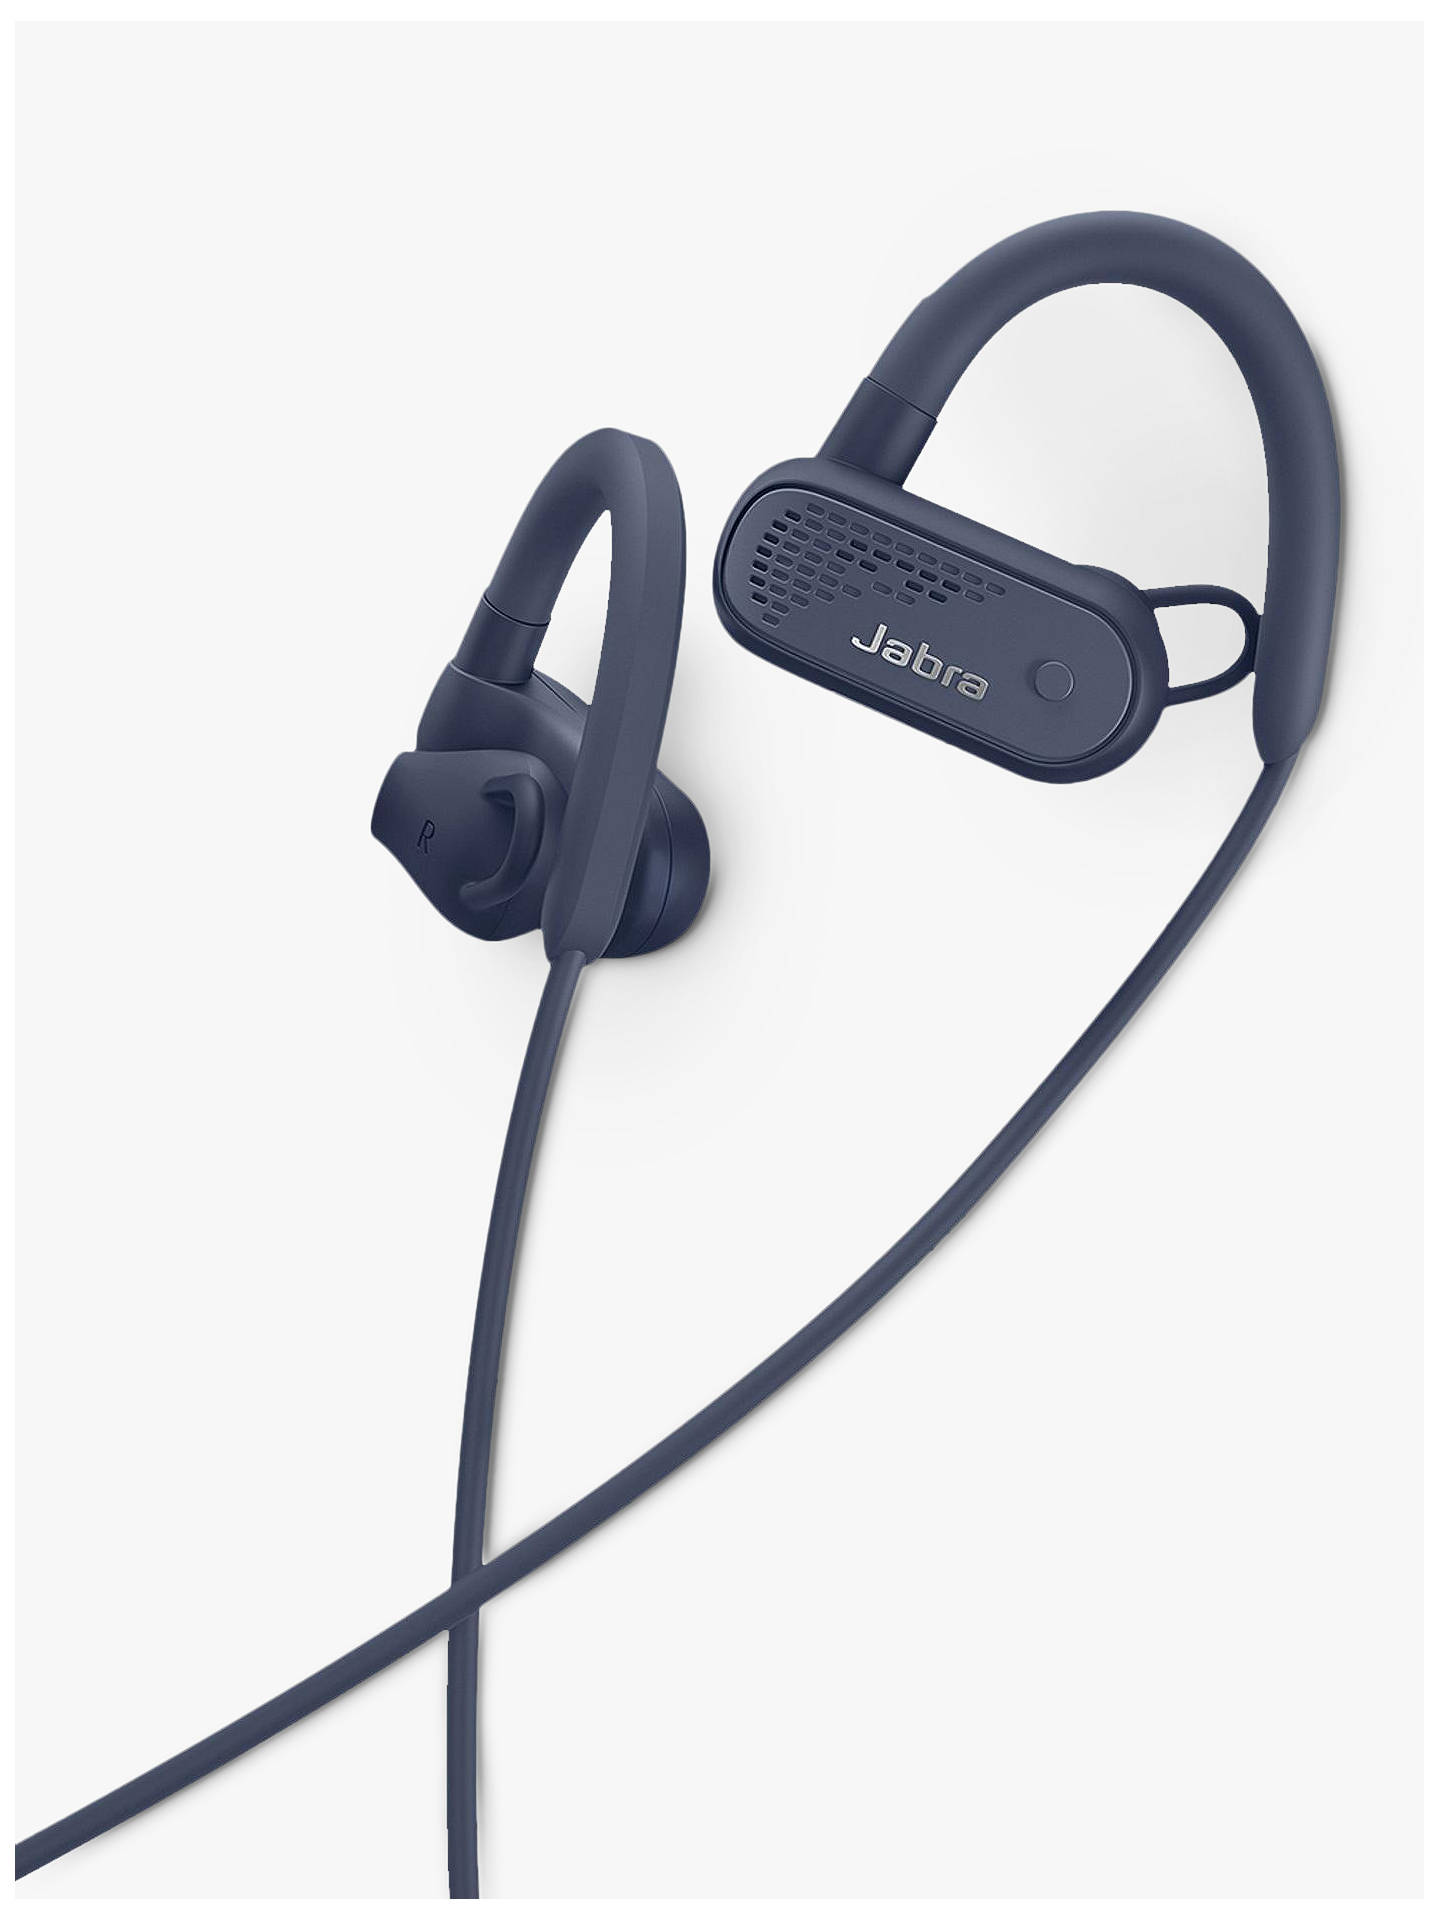 Buy Jabra Elite Active 45e Wireless Waterproof Bluetooth In-Ear Headphones with Mic/Remote, Navy Blue Online at johnlewis.com